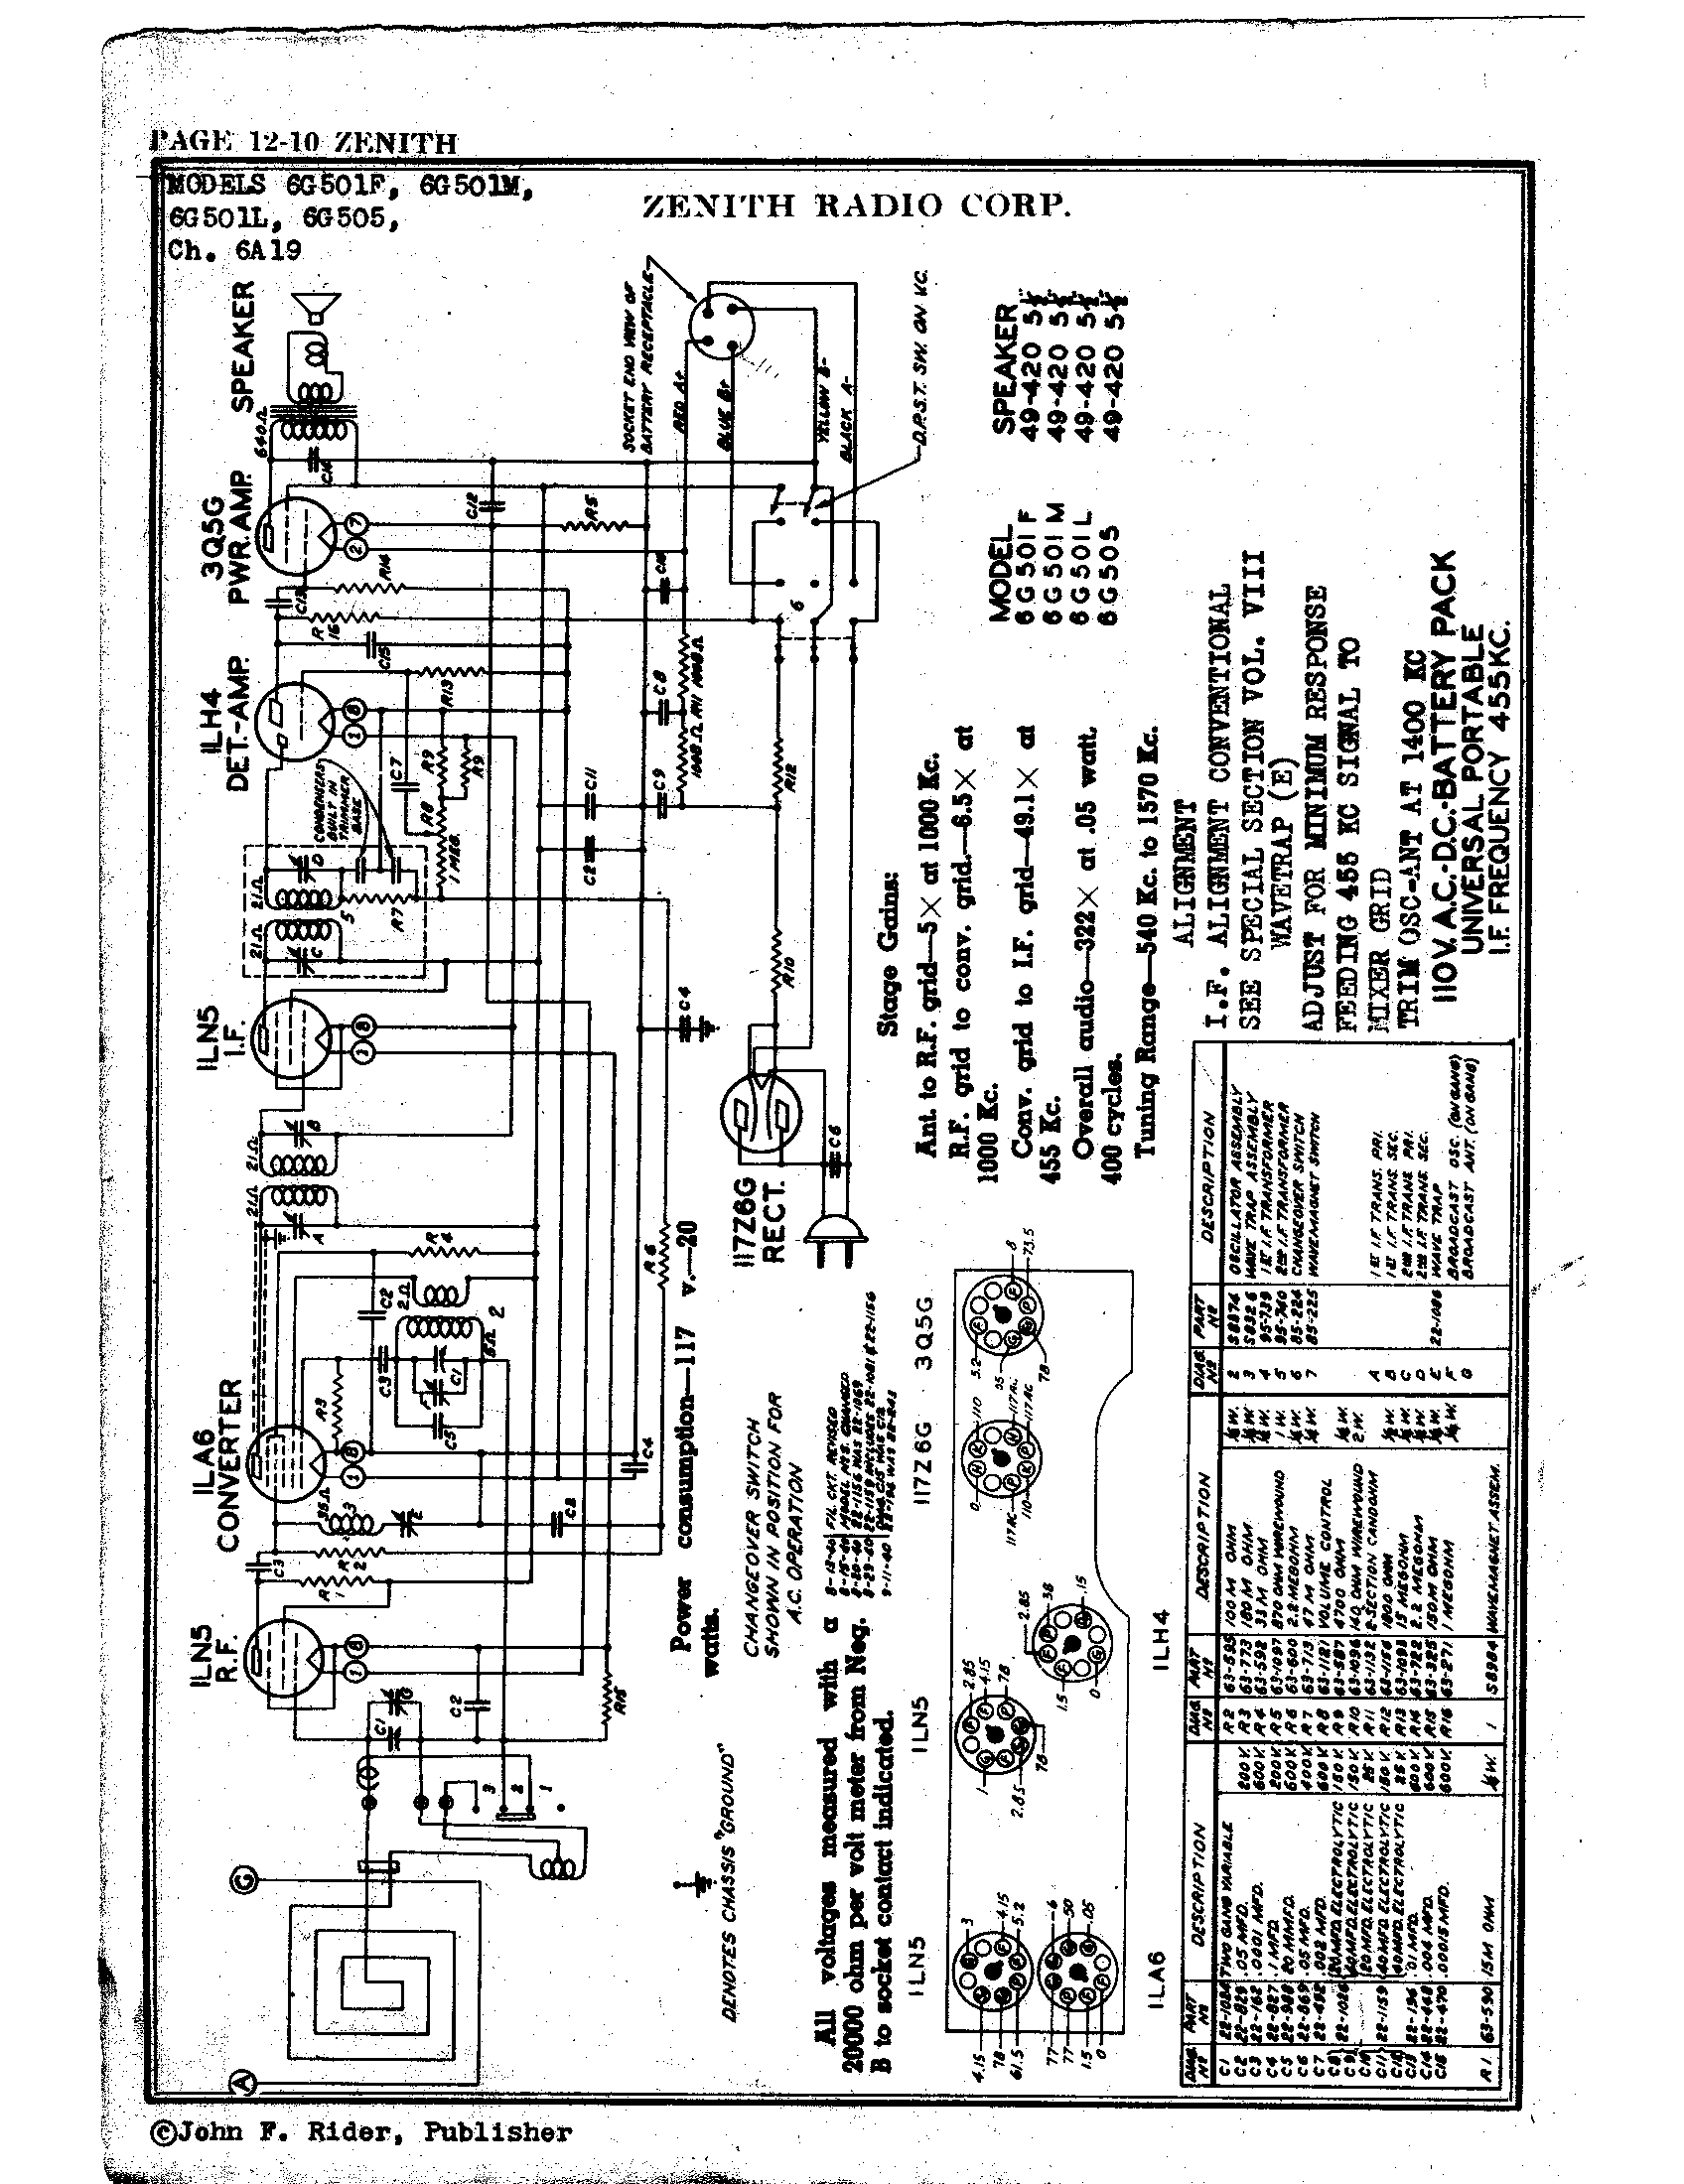 Zenith Radio Corp 6g501m Antique Electronic Supply. Page 1 98 Kb Rider Manual Volume 12. Wiring. Zenith Tube Radio Schematics N73 1 At Scoala.co